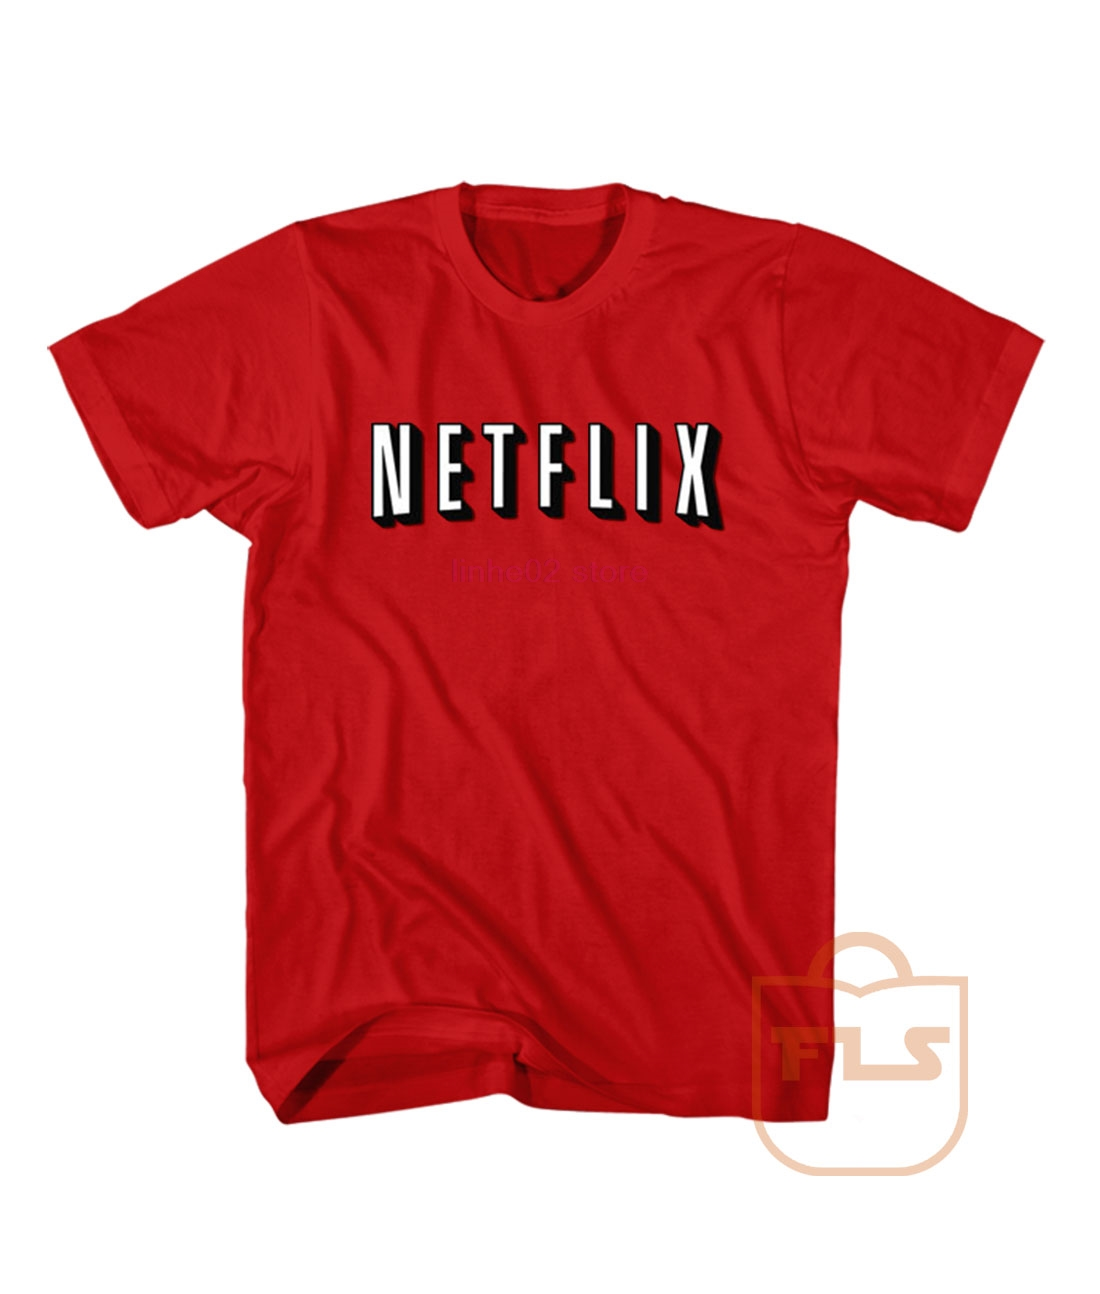 Netflix T Shirt Summer T-shirt Fashion T-shirt